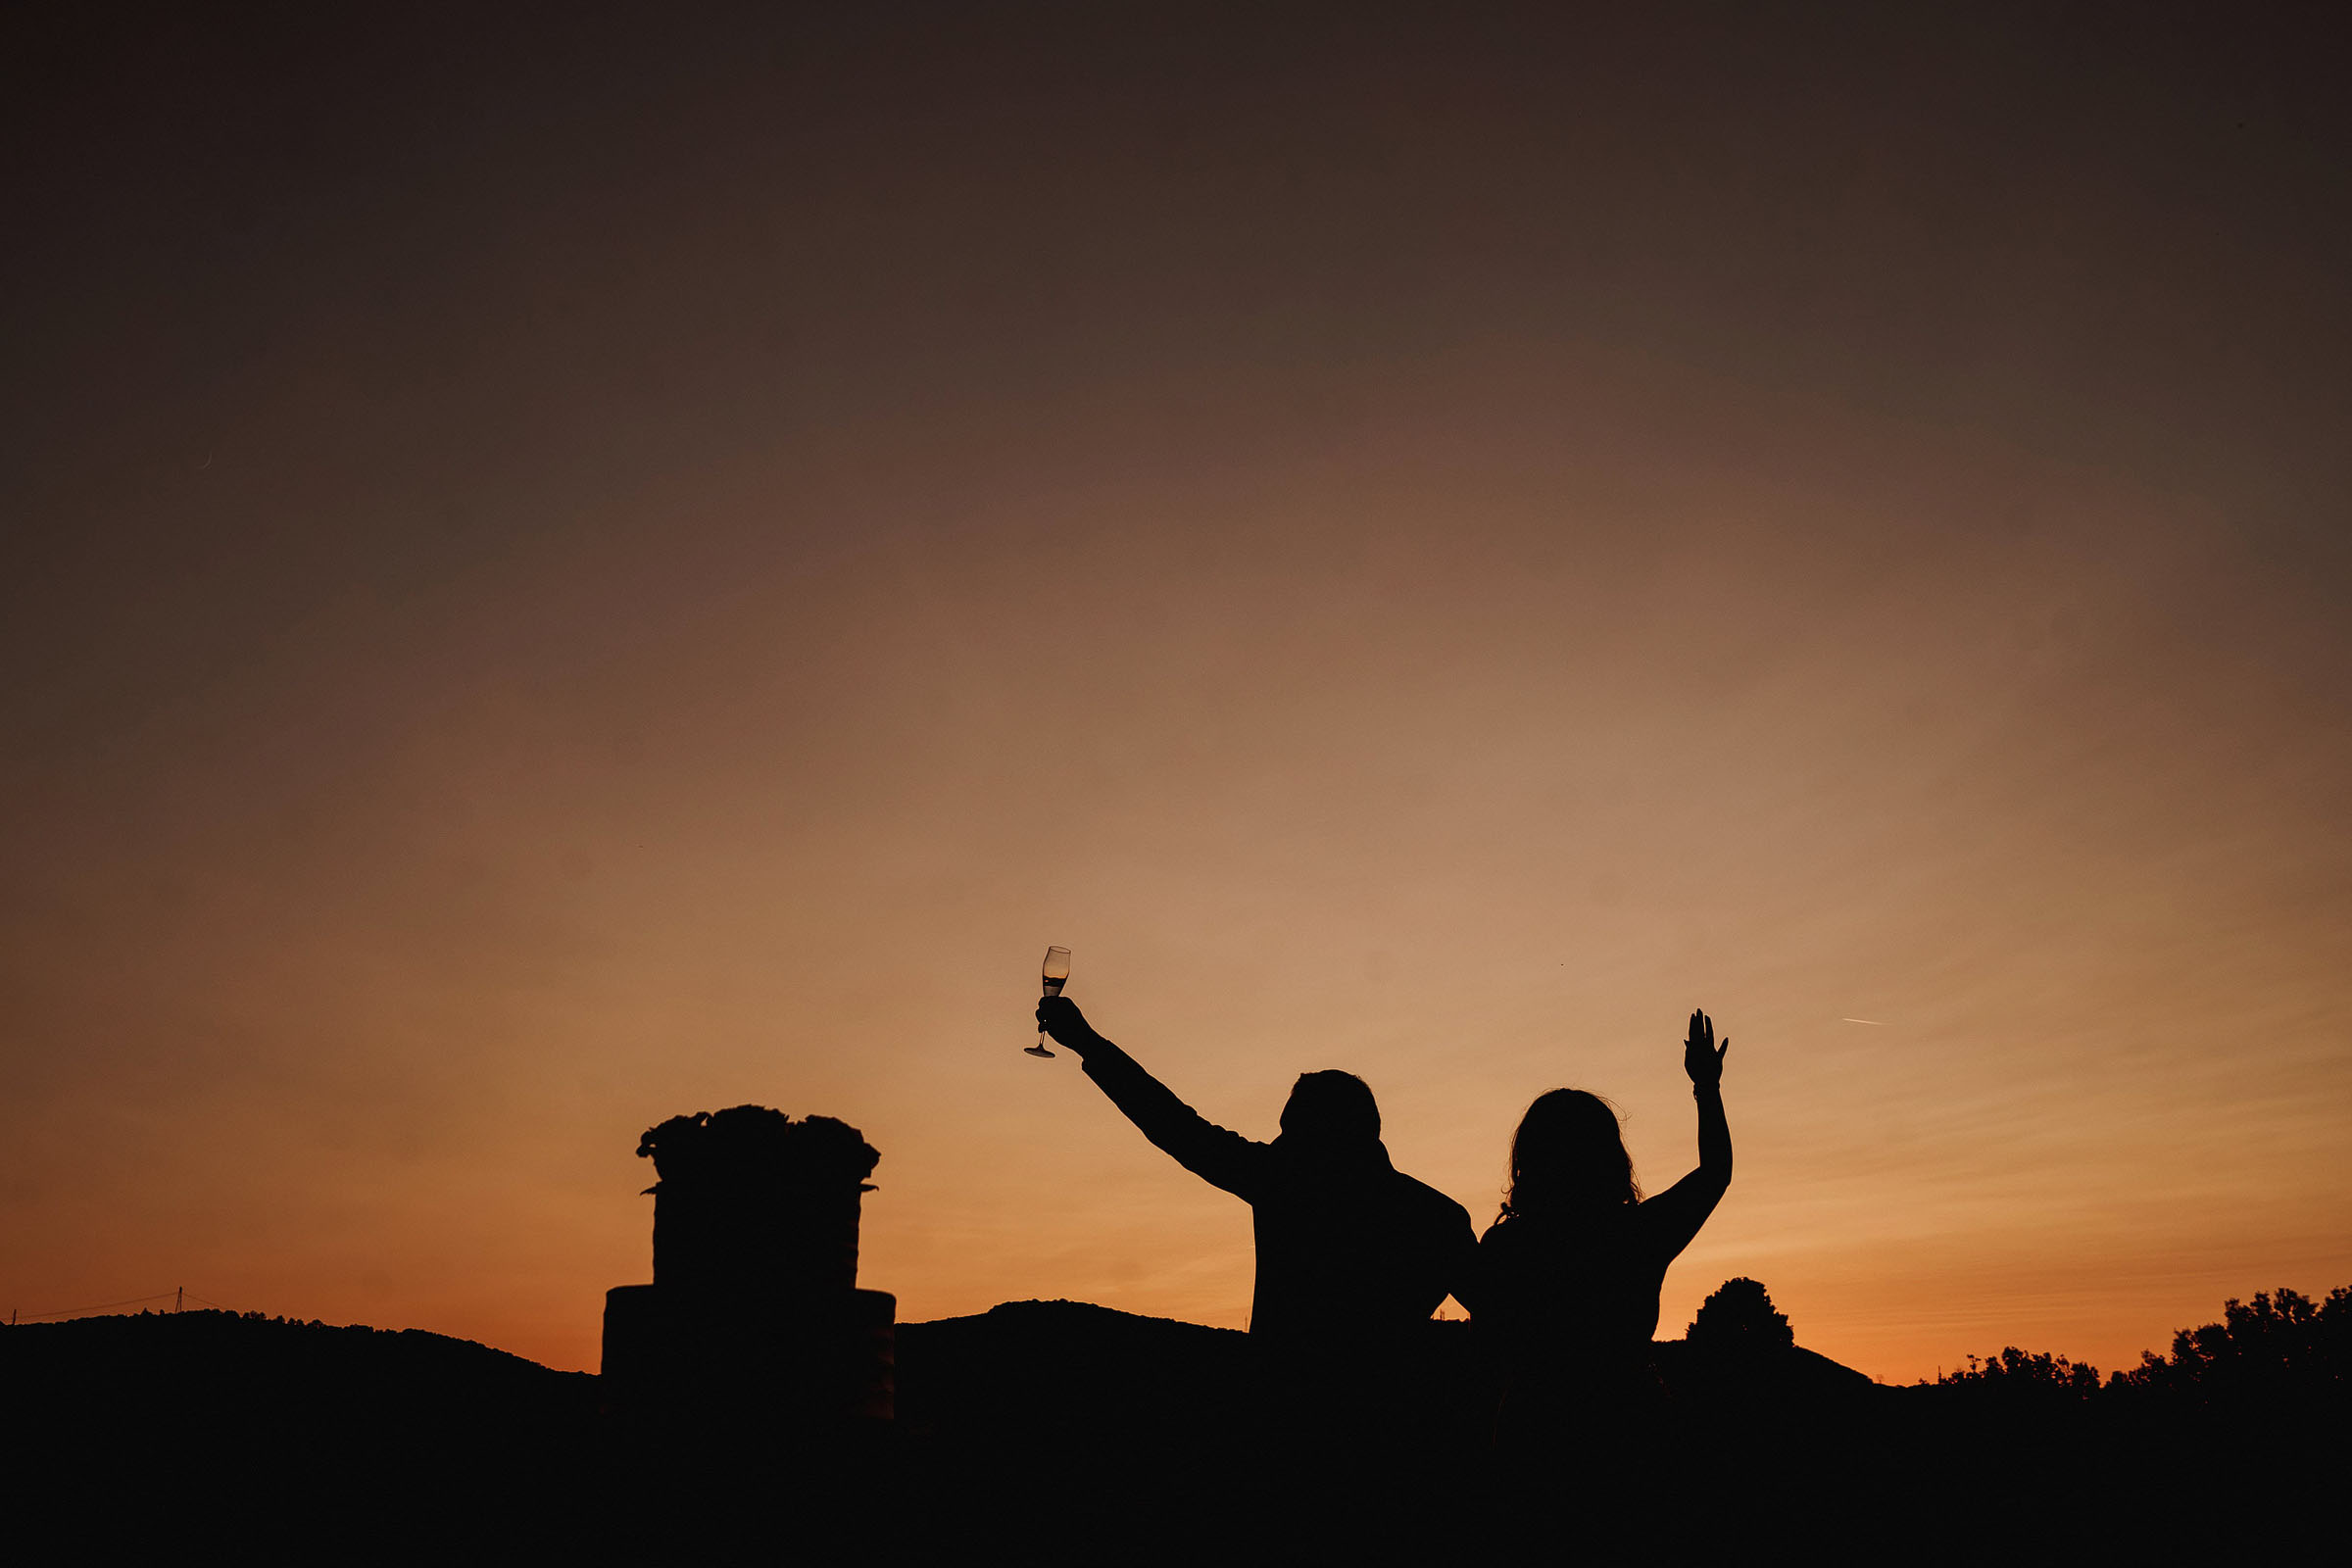 Sunset toast silhouette - Photo by F5 Photography